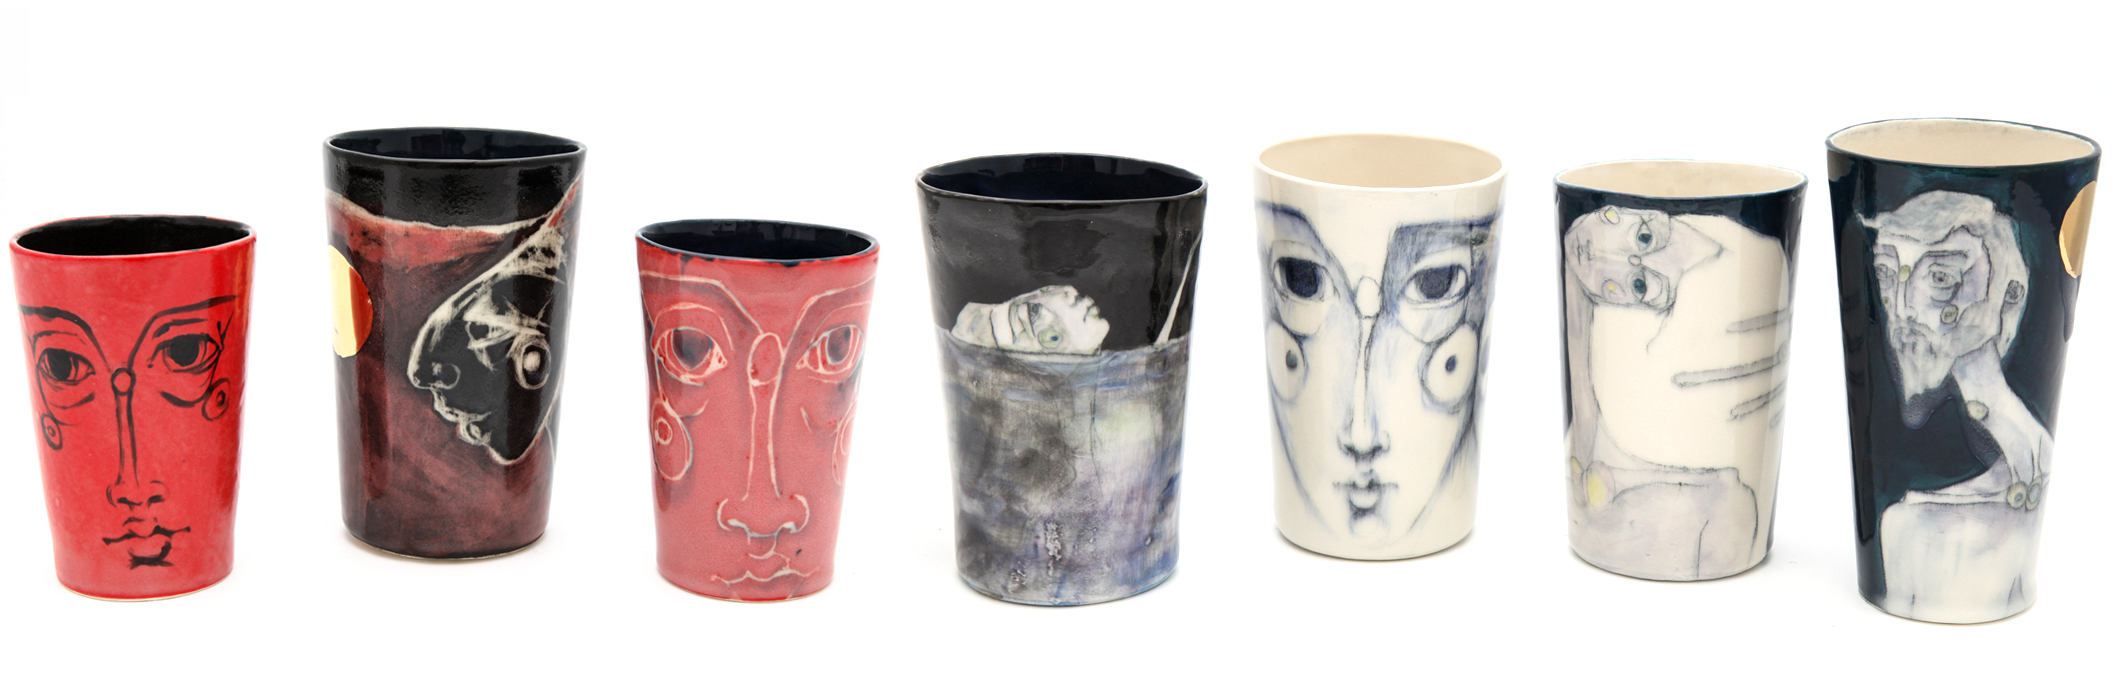 One of a kind cups with glaze & pencil or sgraffito & glaze. Some have 24kt gold glaze.